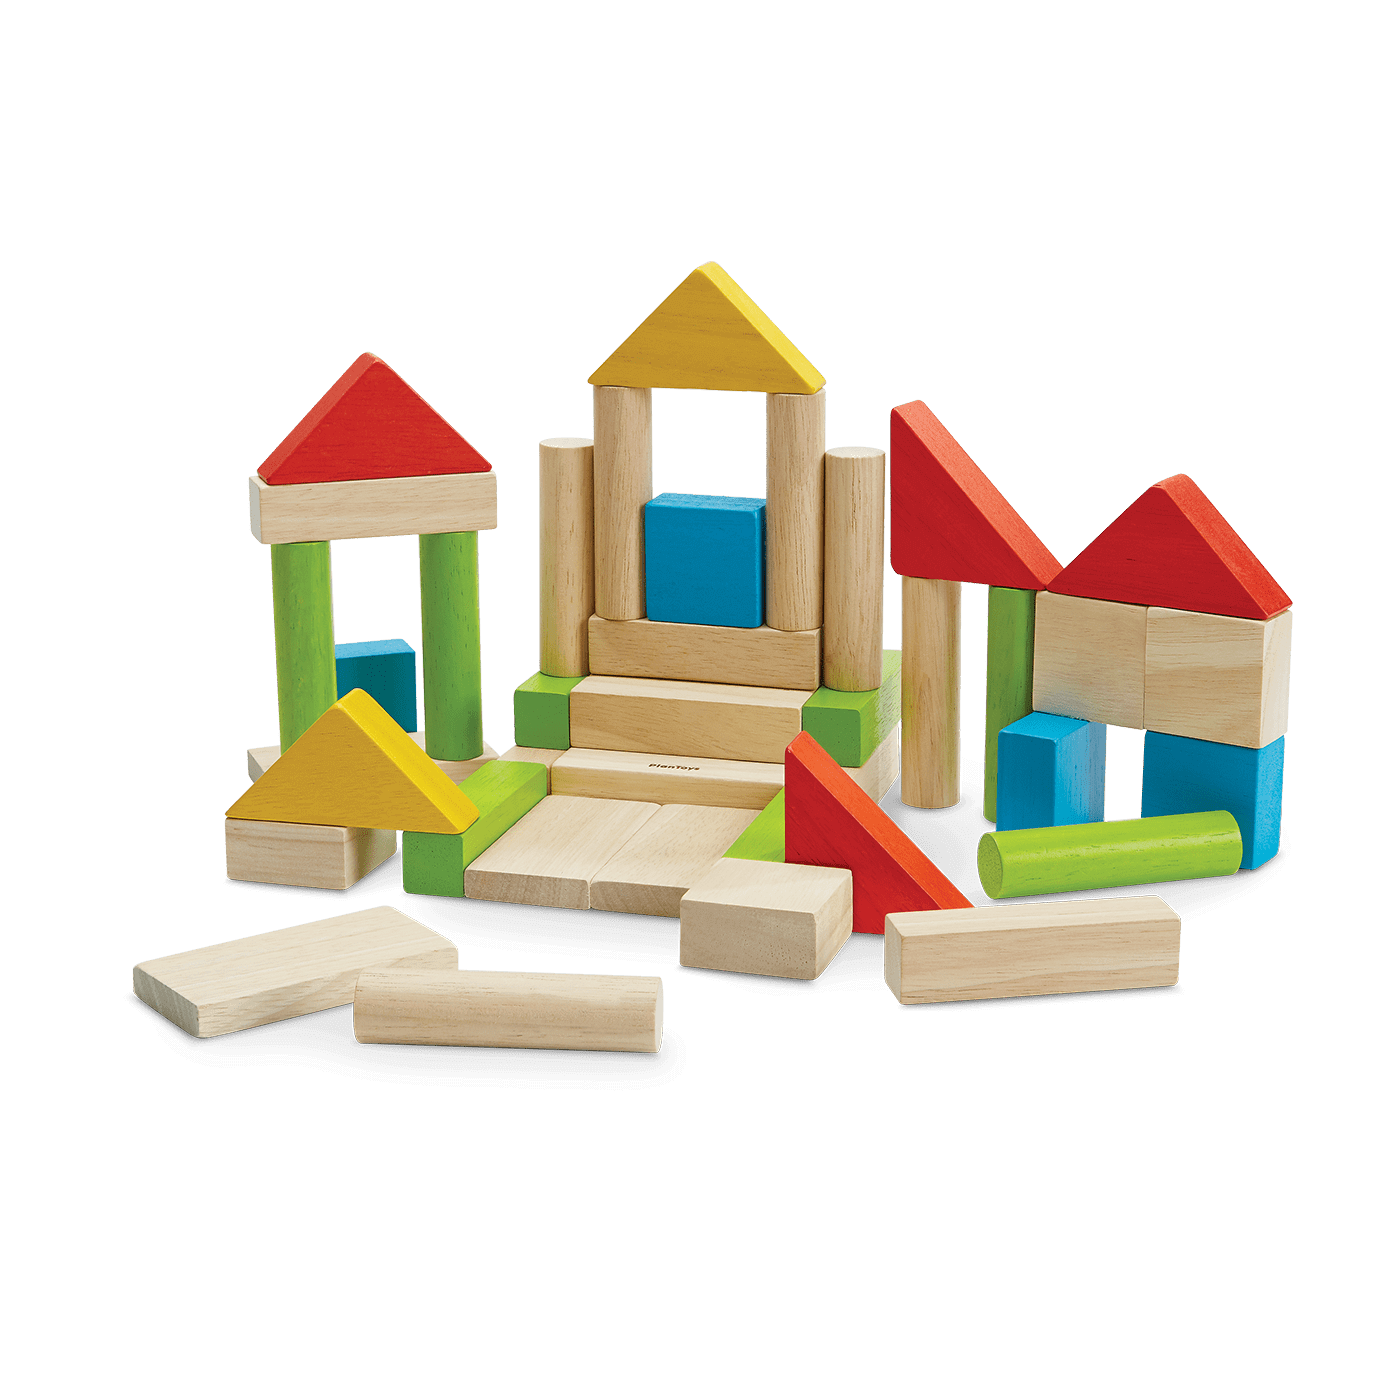 5513_PlanToys_COLORFUL_40_UNIT_BLOCKS_Blocks_and_Construction_Creative_Imagination_Coordination_Language_and_Communications_Social_2yrs_Wooden_toys_Education_toys_Safety_Toys_Non-toxic_0.png